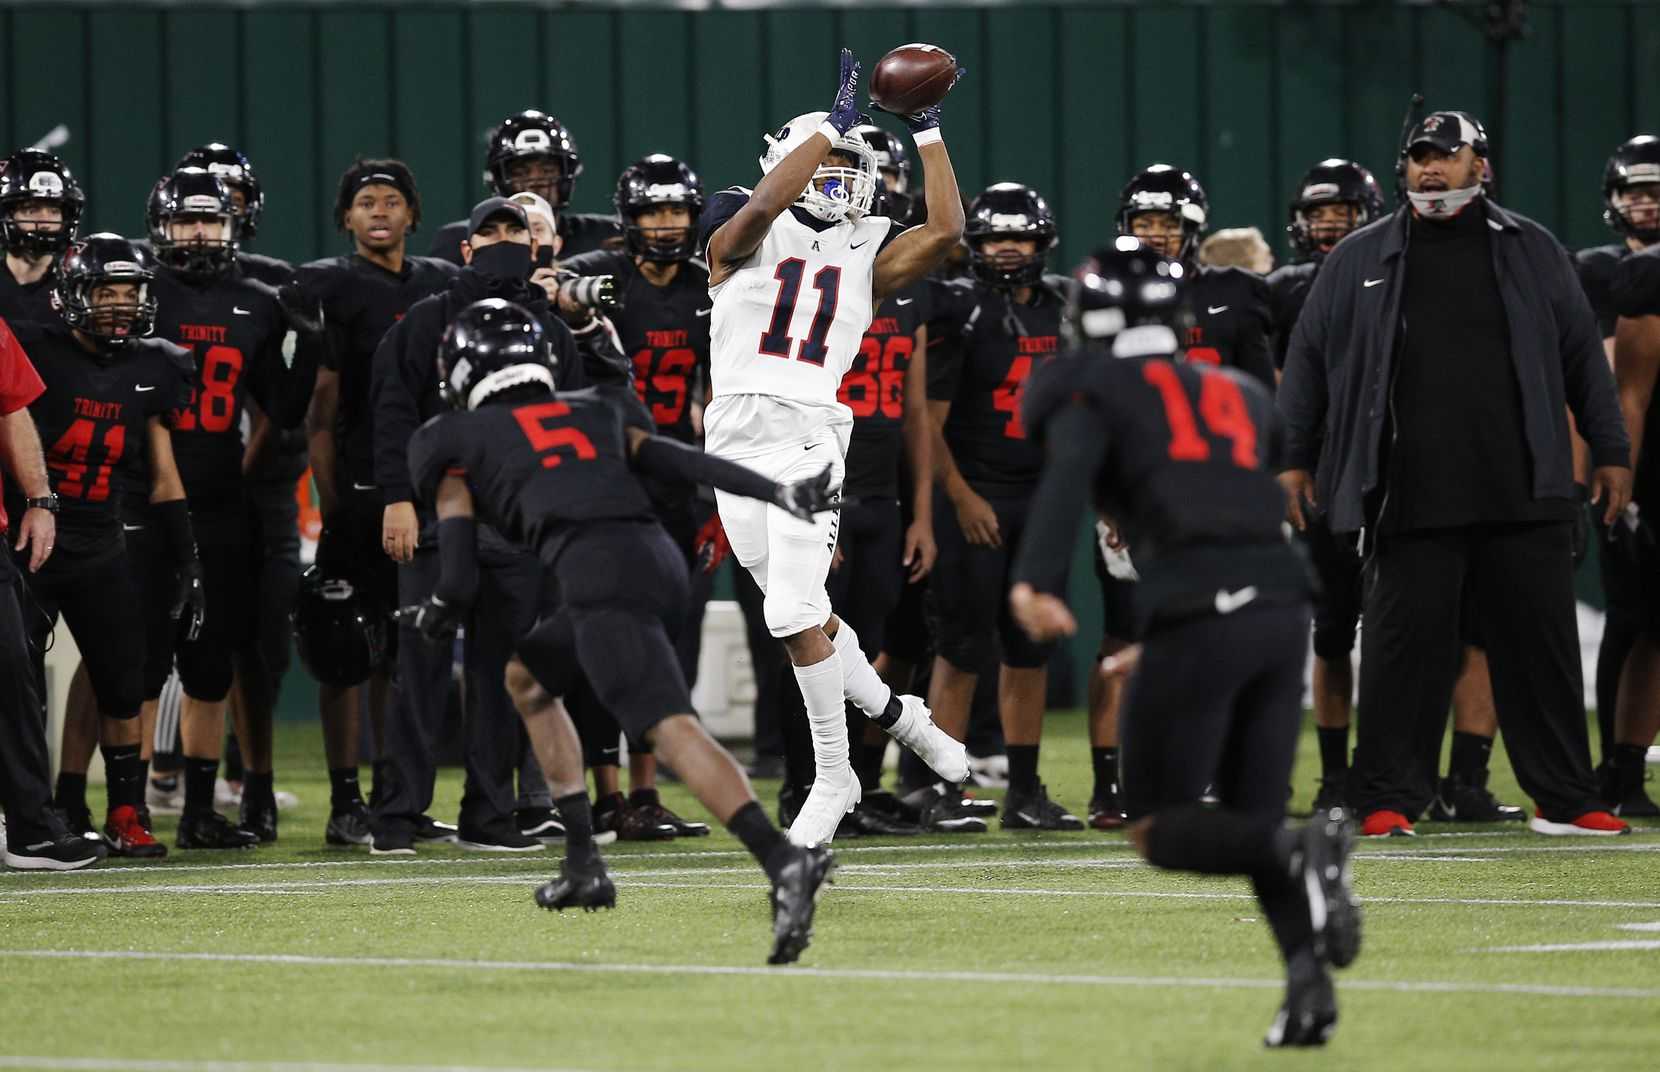 Allen senior wide receiver Jordan Johnson (11) catches a pass as Euless Trinity junior defensive back Jayveus Lyons (5) defends during the first half of a high school Class 6A Division I Region I semifinal football game at Globe Life Park in Arlington, Saturday, December 26, 2020. (Brandon Wade/Special Contributor)